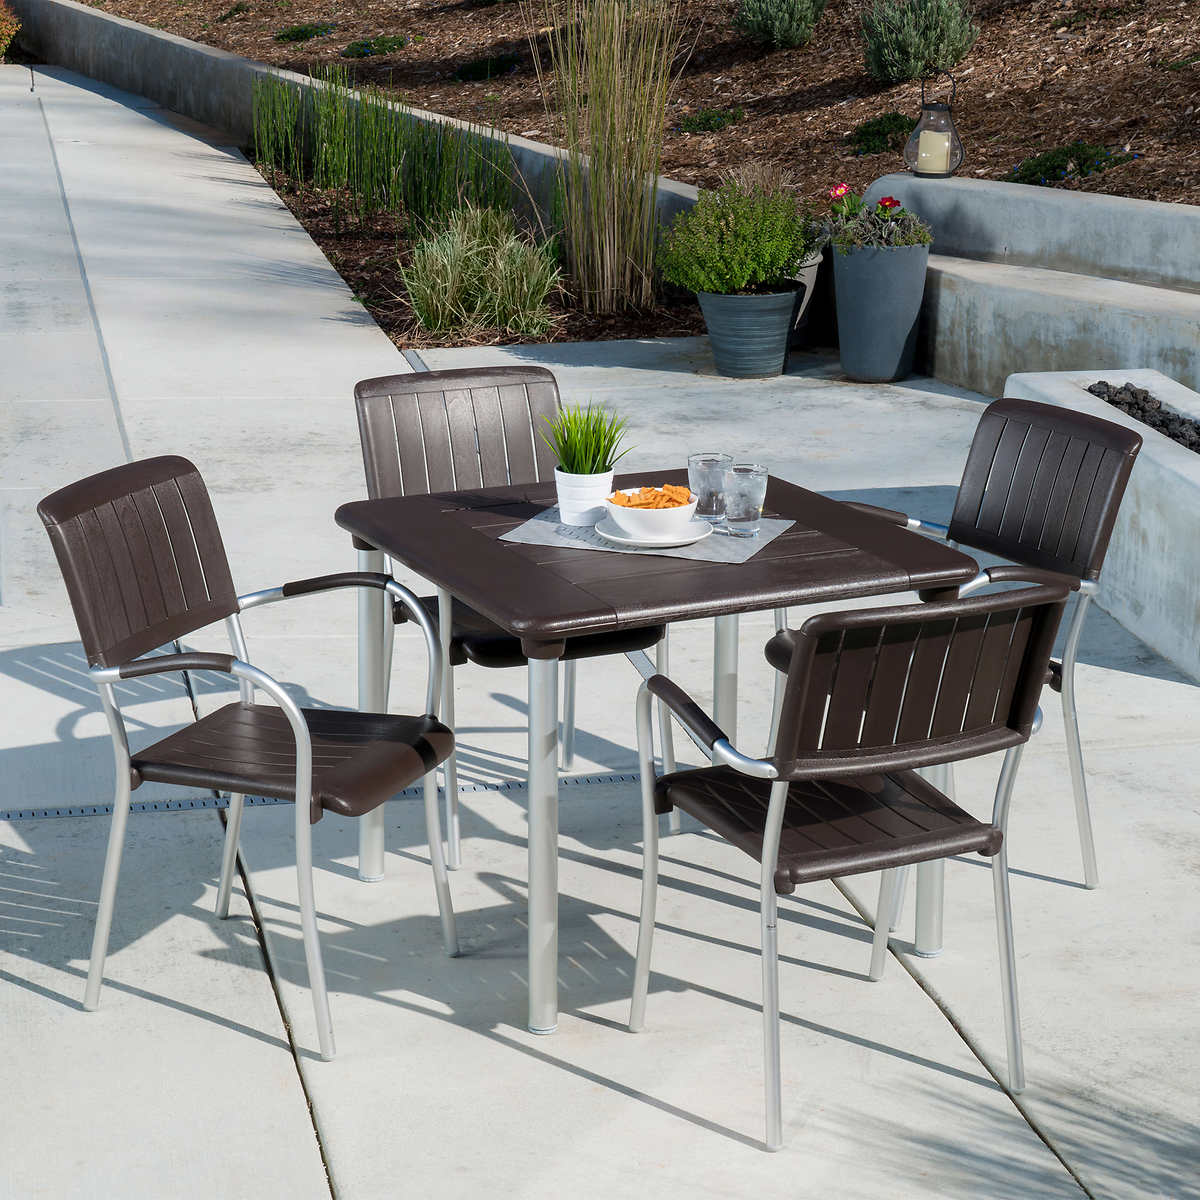 Musa 5-piece Commercial Dining Set in Caffe by Nardi - Commercial Patio Furniture Costco